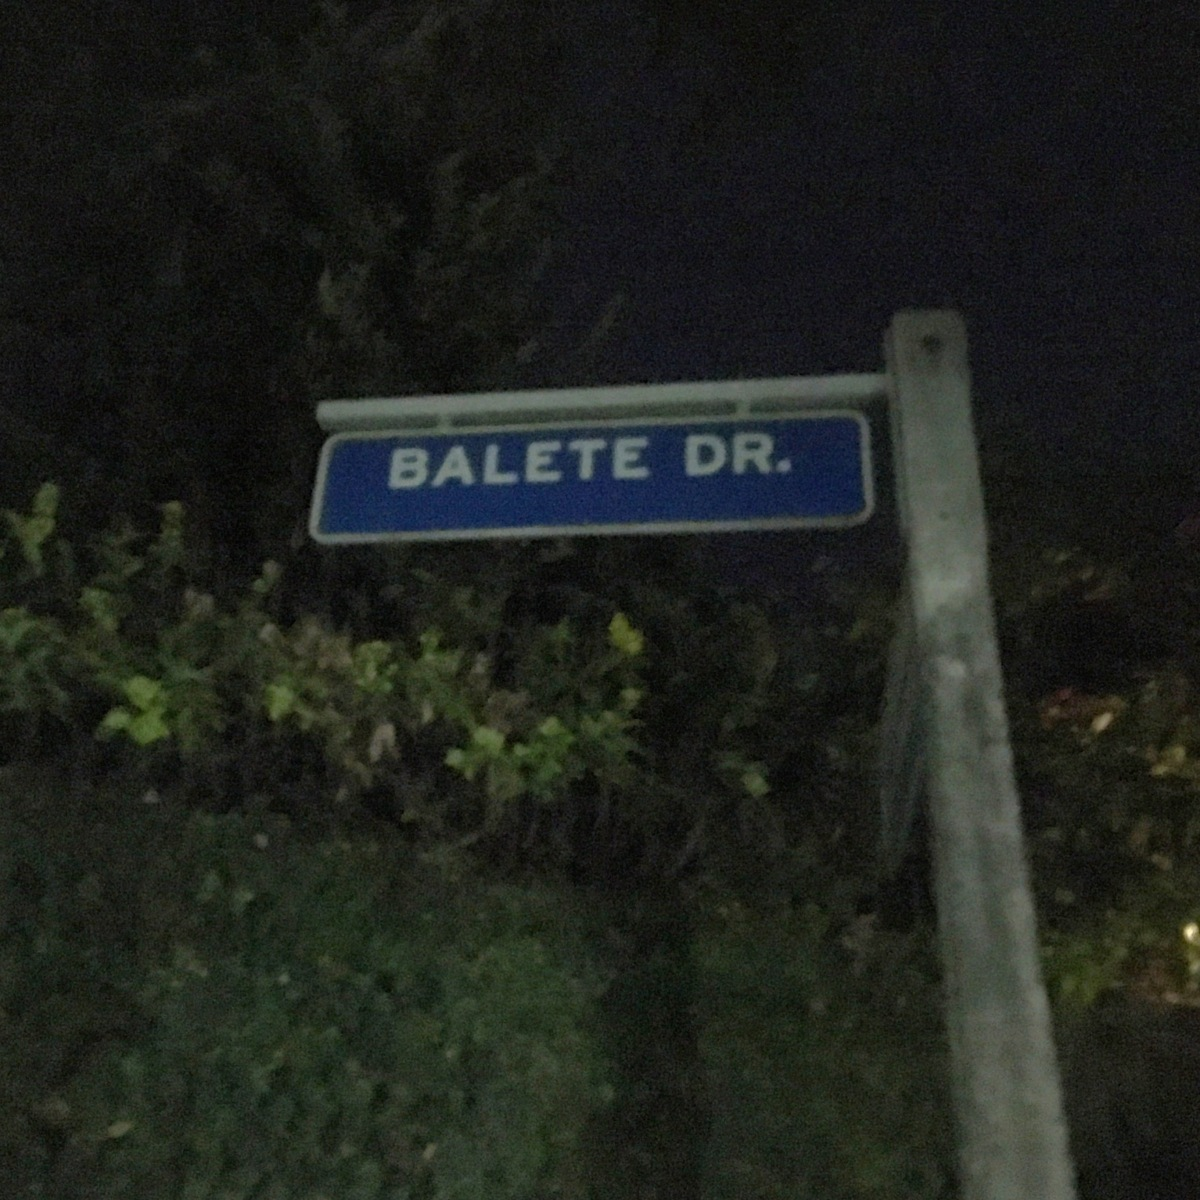 True Weird: We Went Ghost Hunting Along Balete Drive and This is What We Found